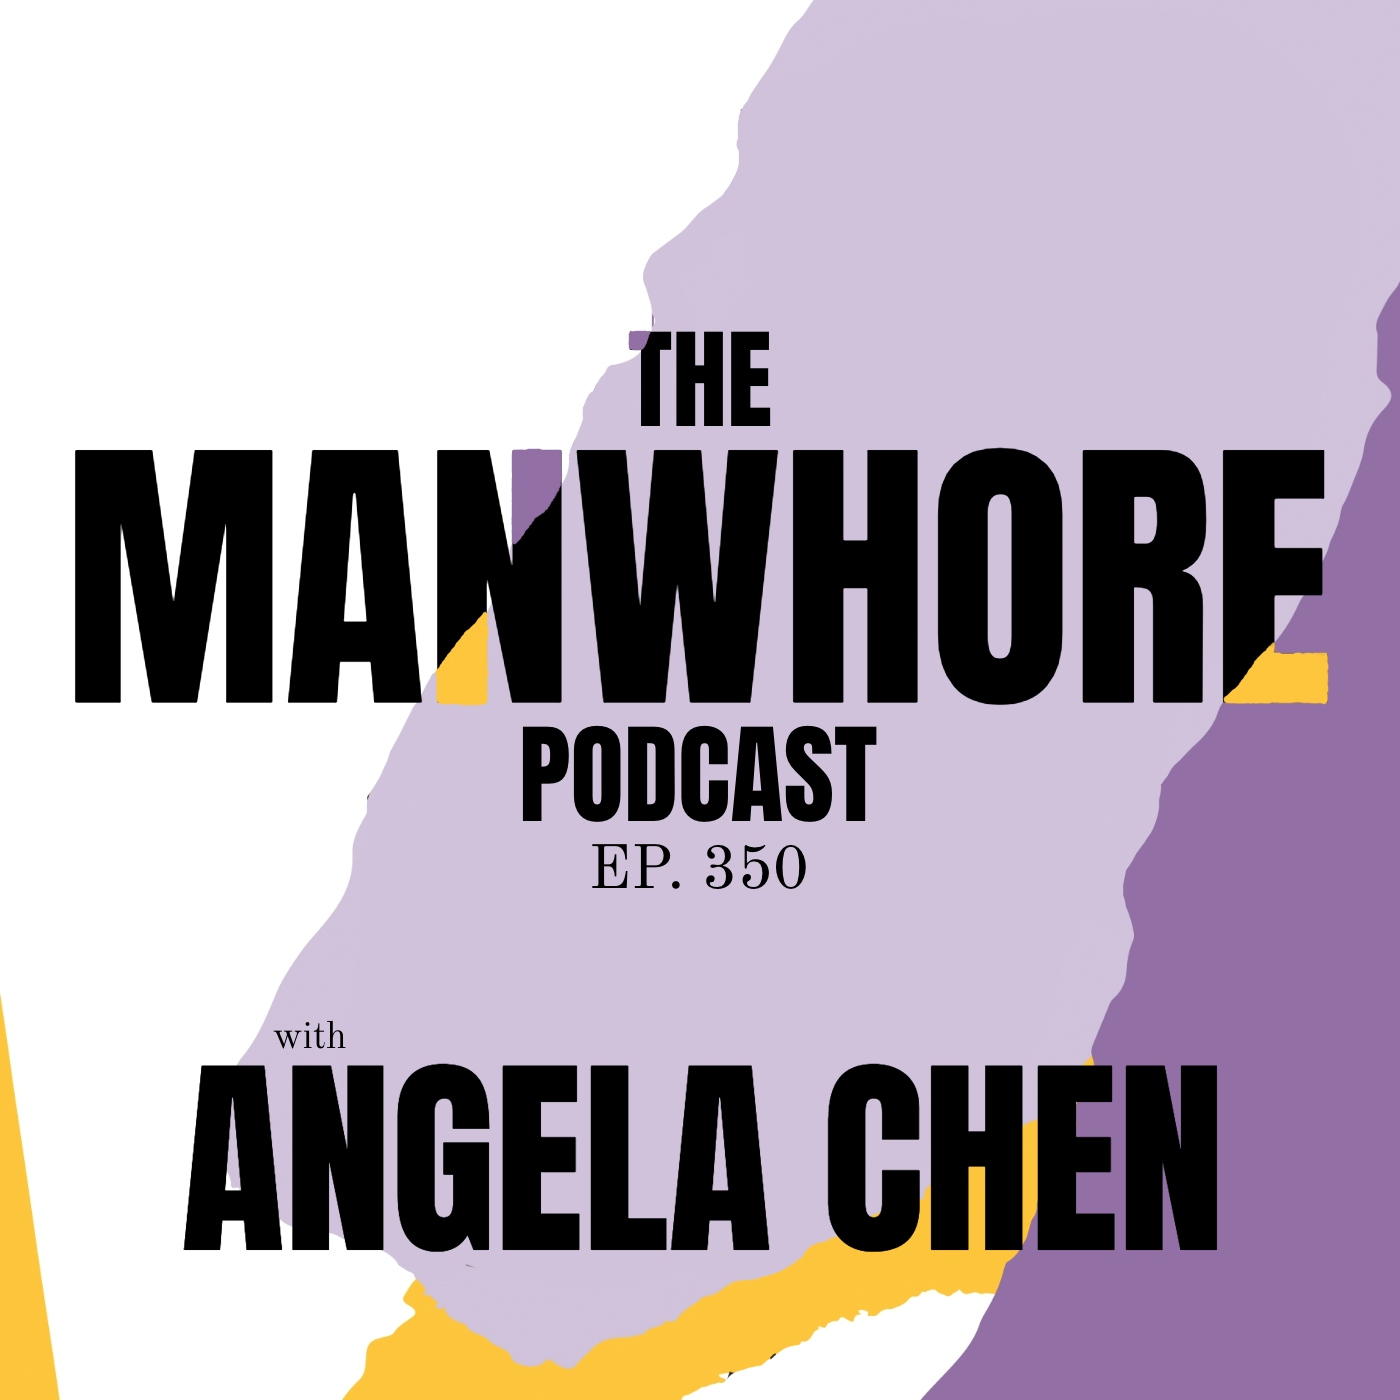 The Manwhore Podcast: A Sex-Positive Quest - Ep. 350: Why are you so obsessed with asexual people's sex lives? (Angela Chen)